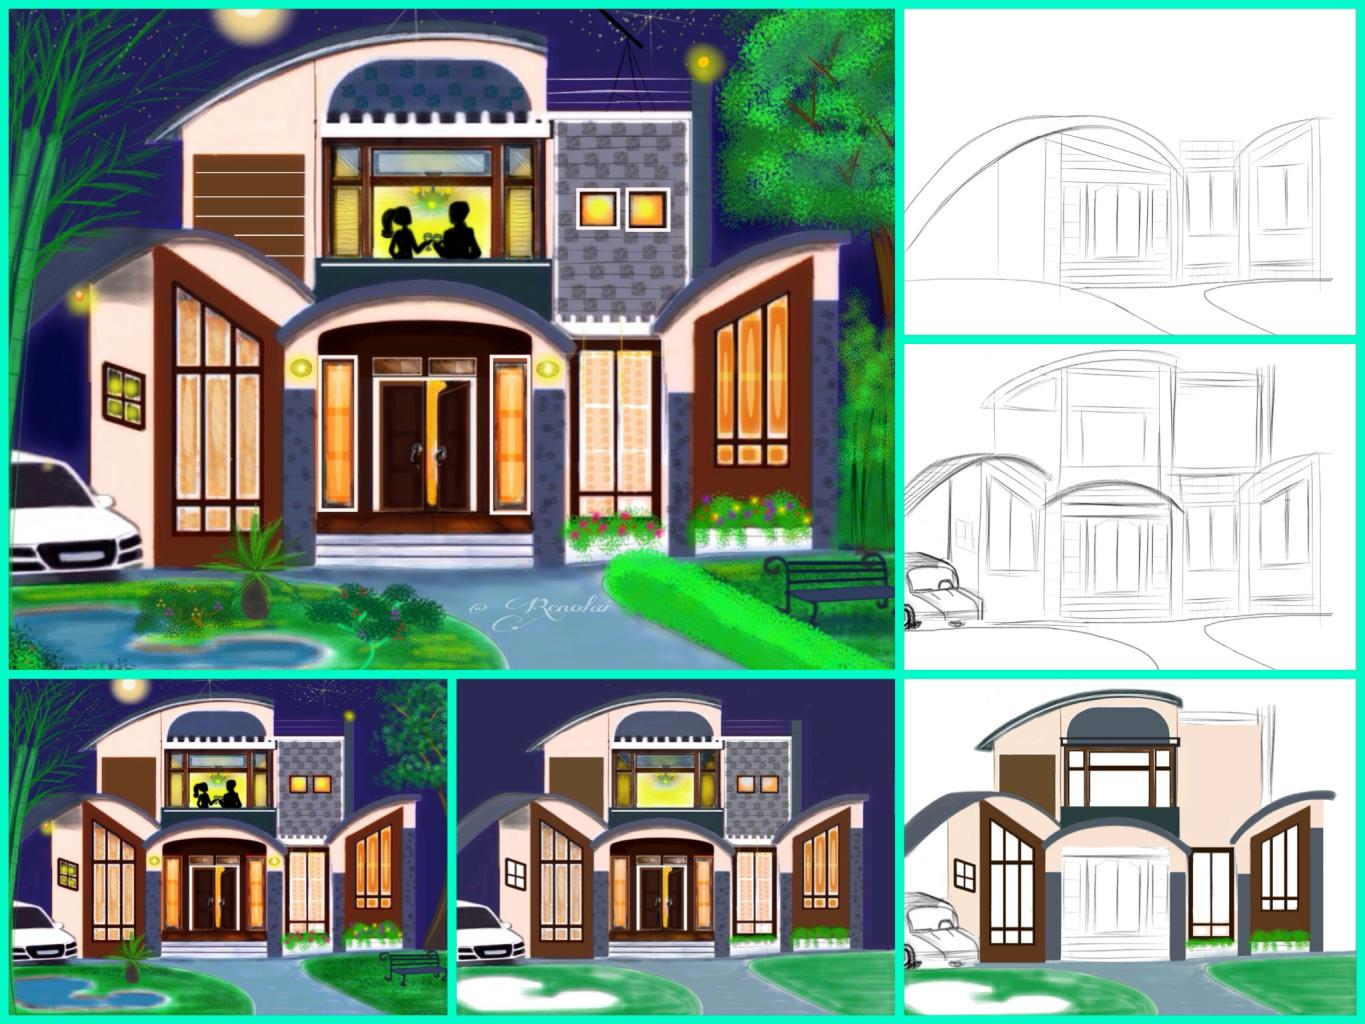 Tutorial on how to draw a house